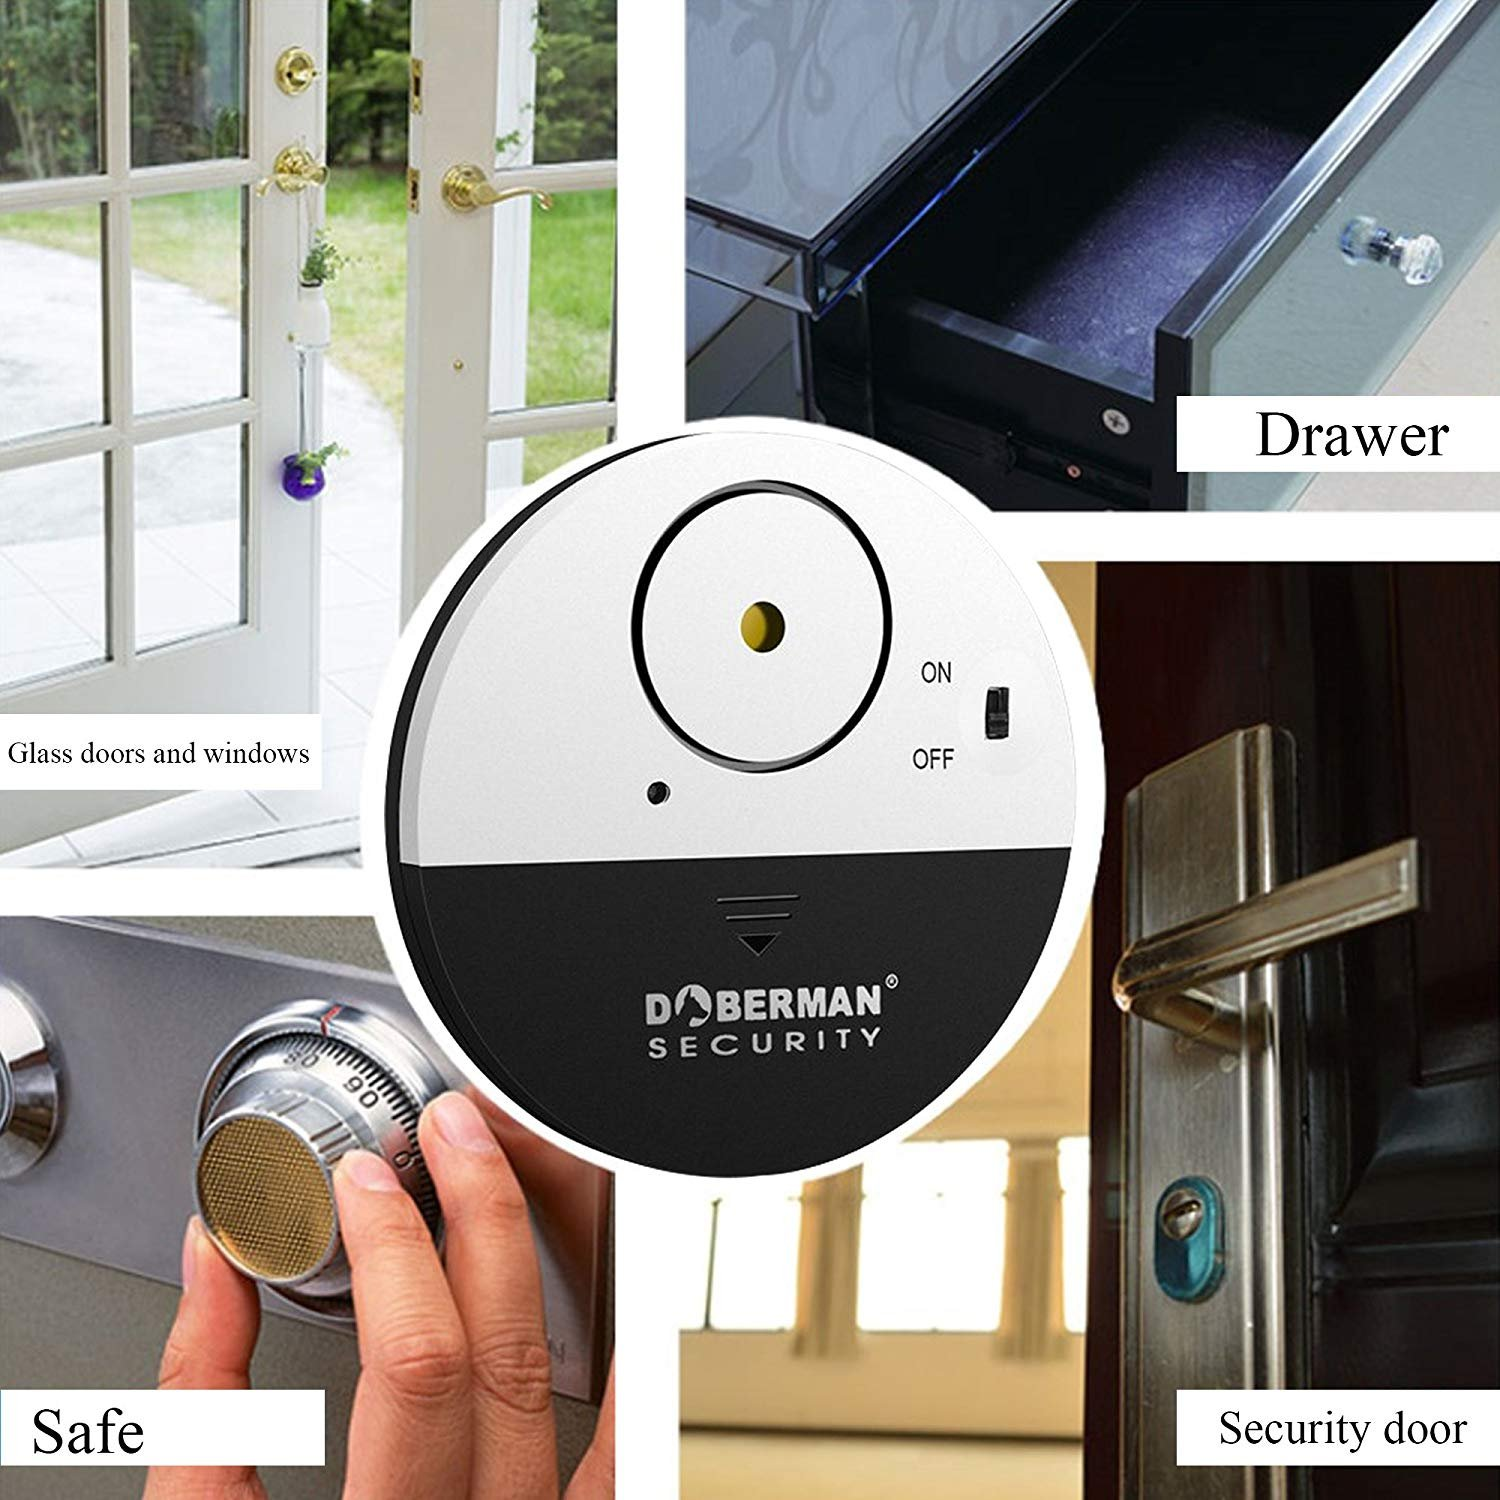 Top-Guard 4 pieza Alarma Hogar de Seguridad de Ventana D/óberman Ultrafino DOBERMAN SECURITY Ultra-Slim Window Alarm Alarma casa